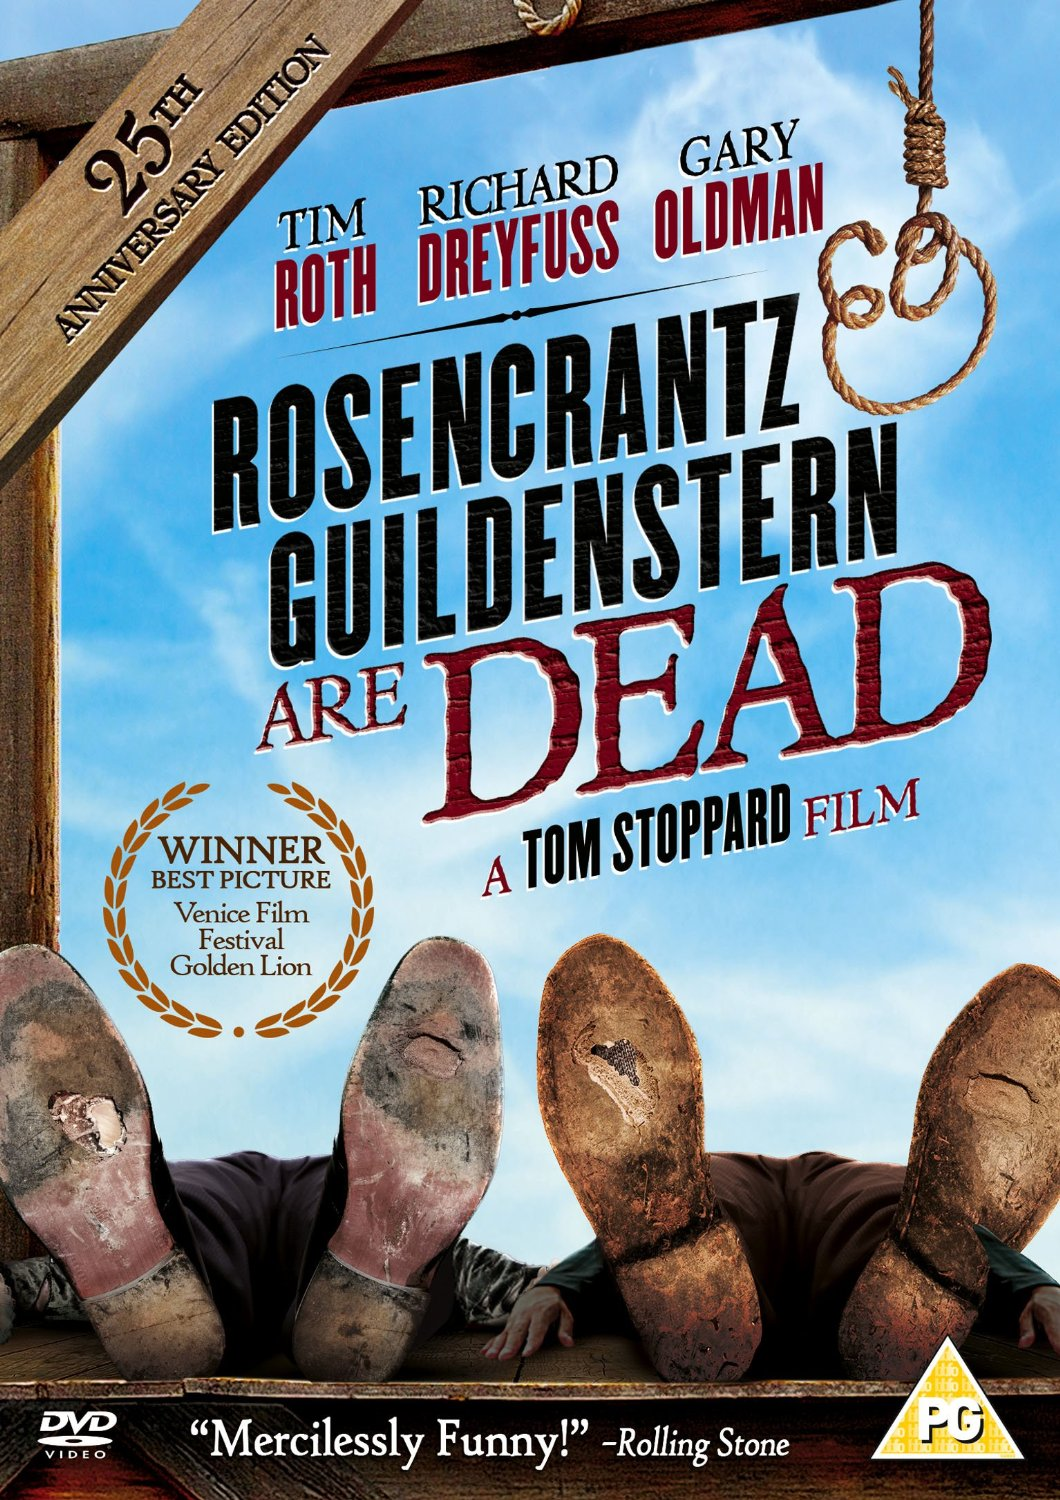 Buy Rosencrantz and Guildenstern are Dead - 25th Anniversary Edition